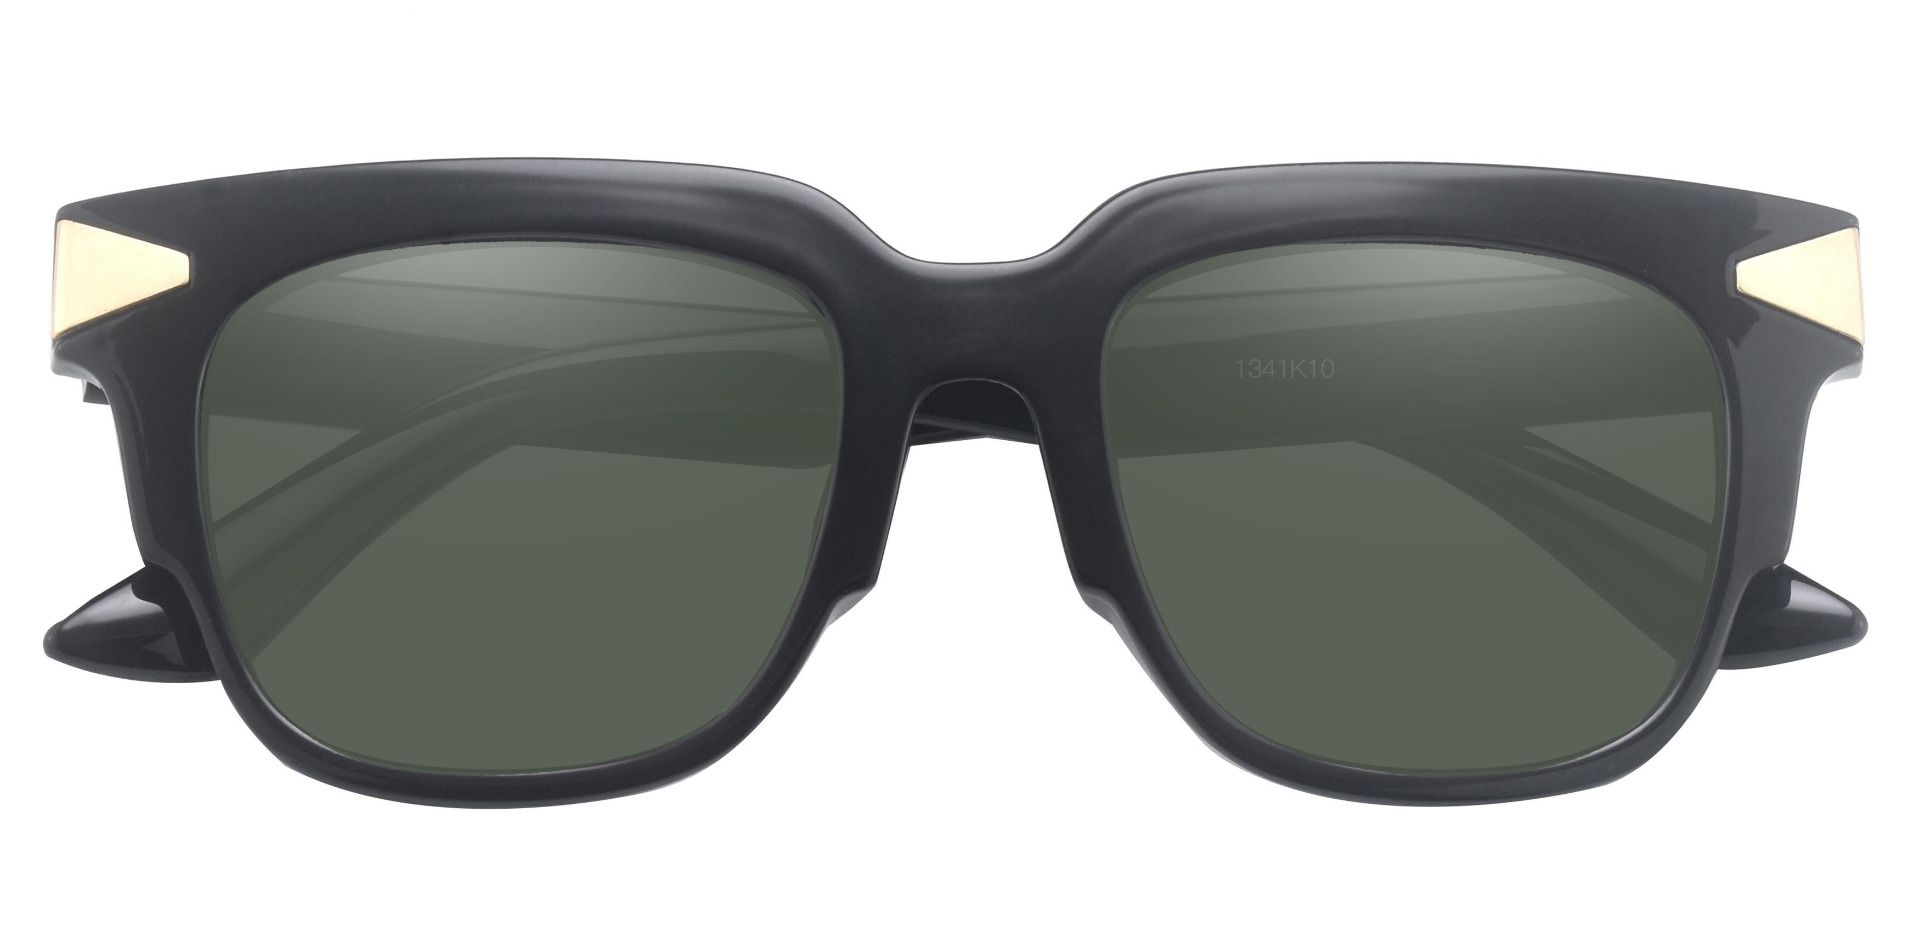 Ardent Square Reading Sunglasses - Black Frame With Green Lenses